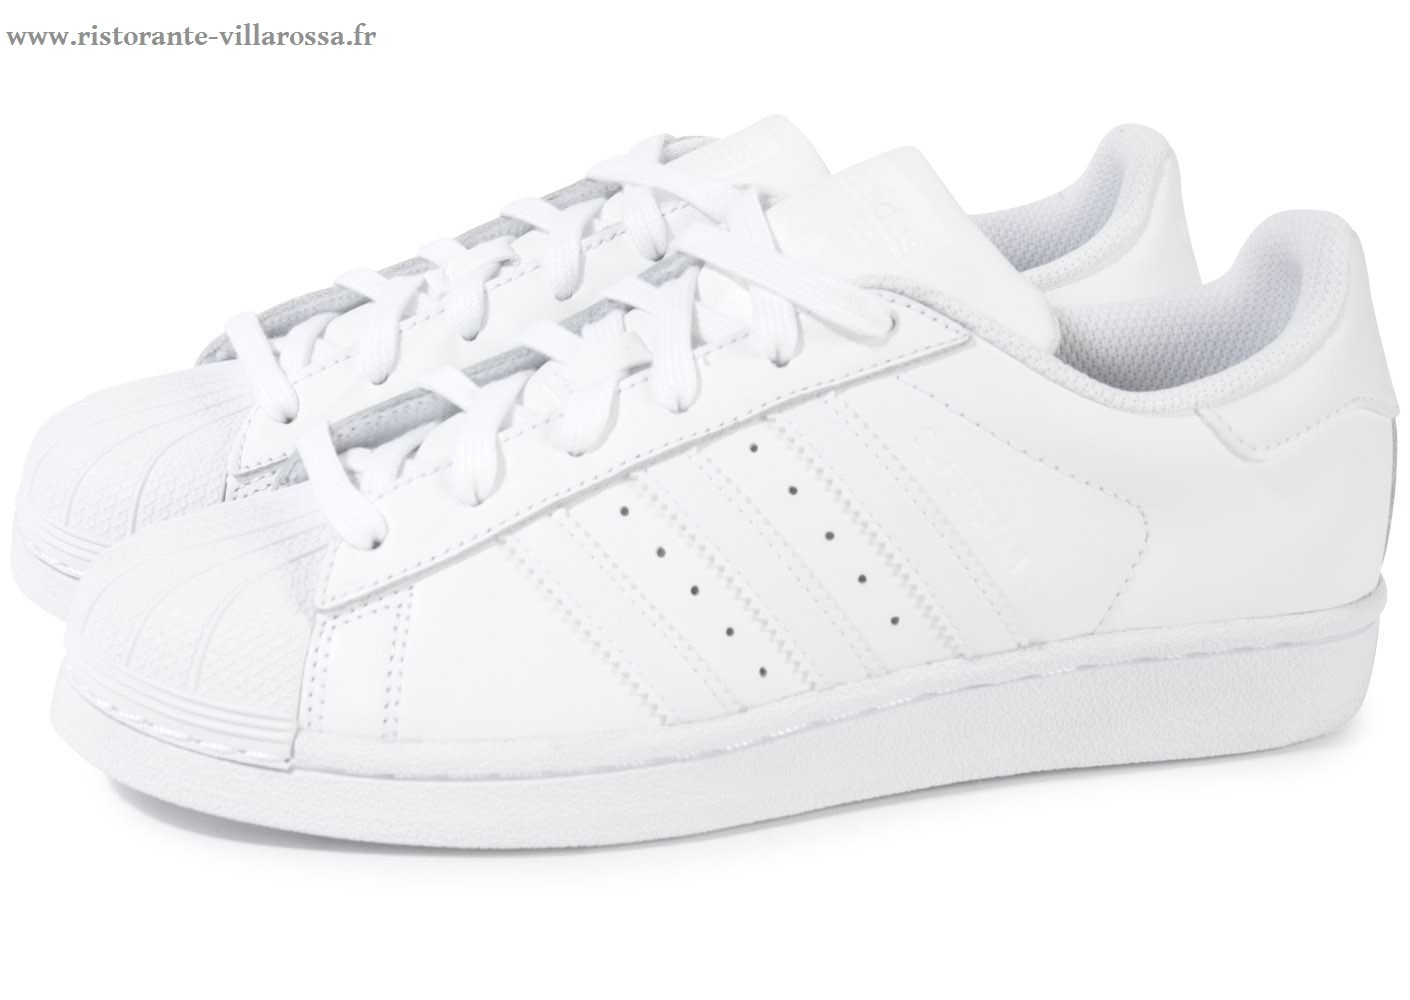 Réduction authentique adidas superstar blanche femme pas cher ... 3f29a8bb5943